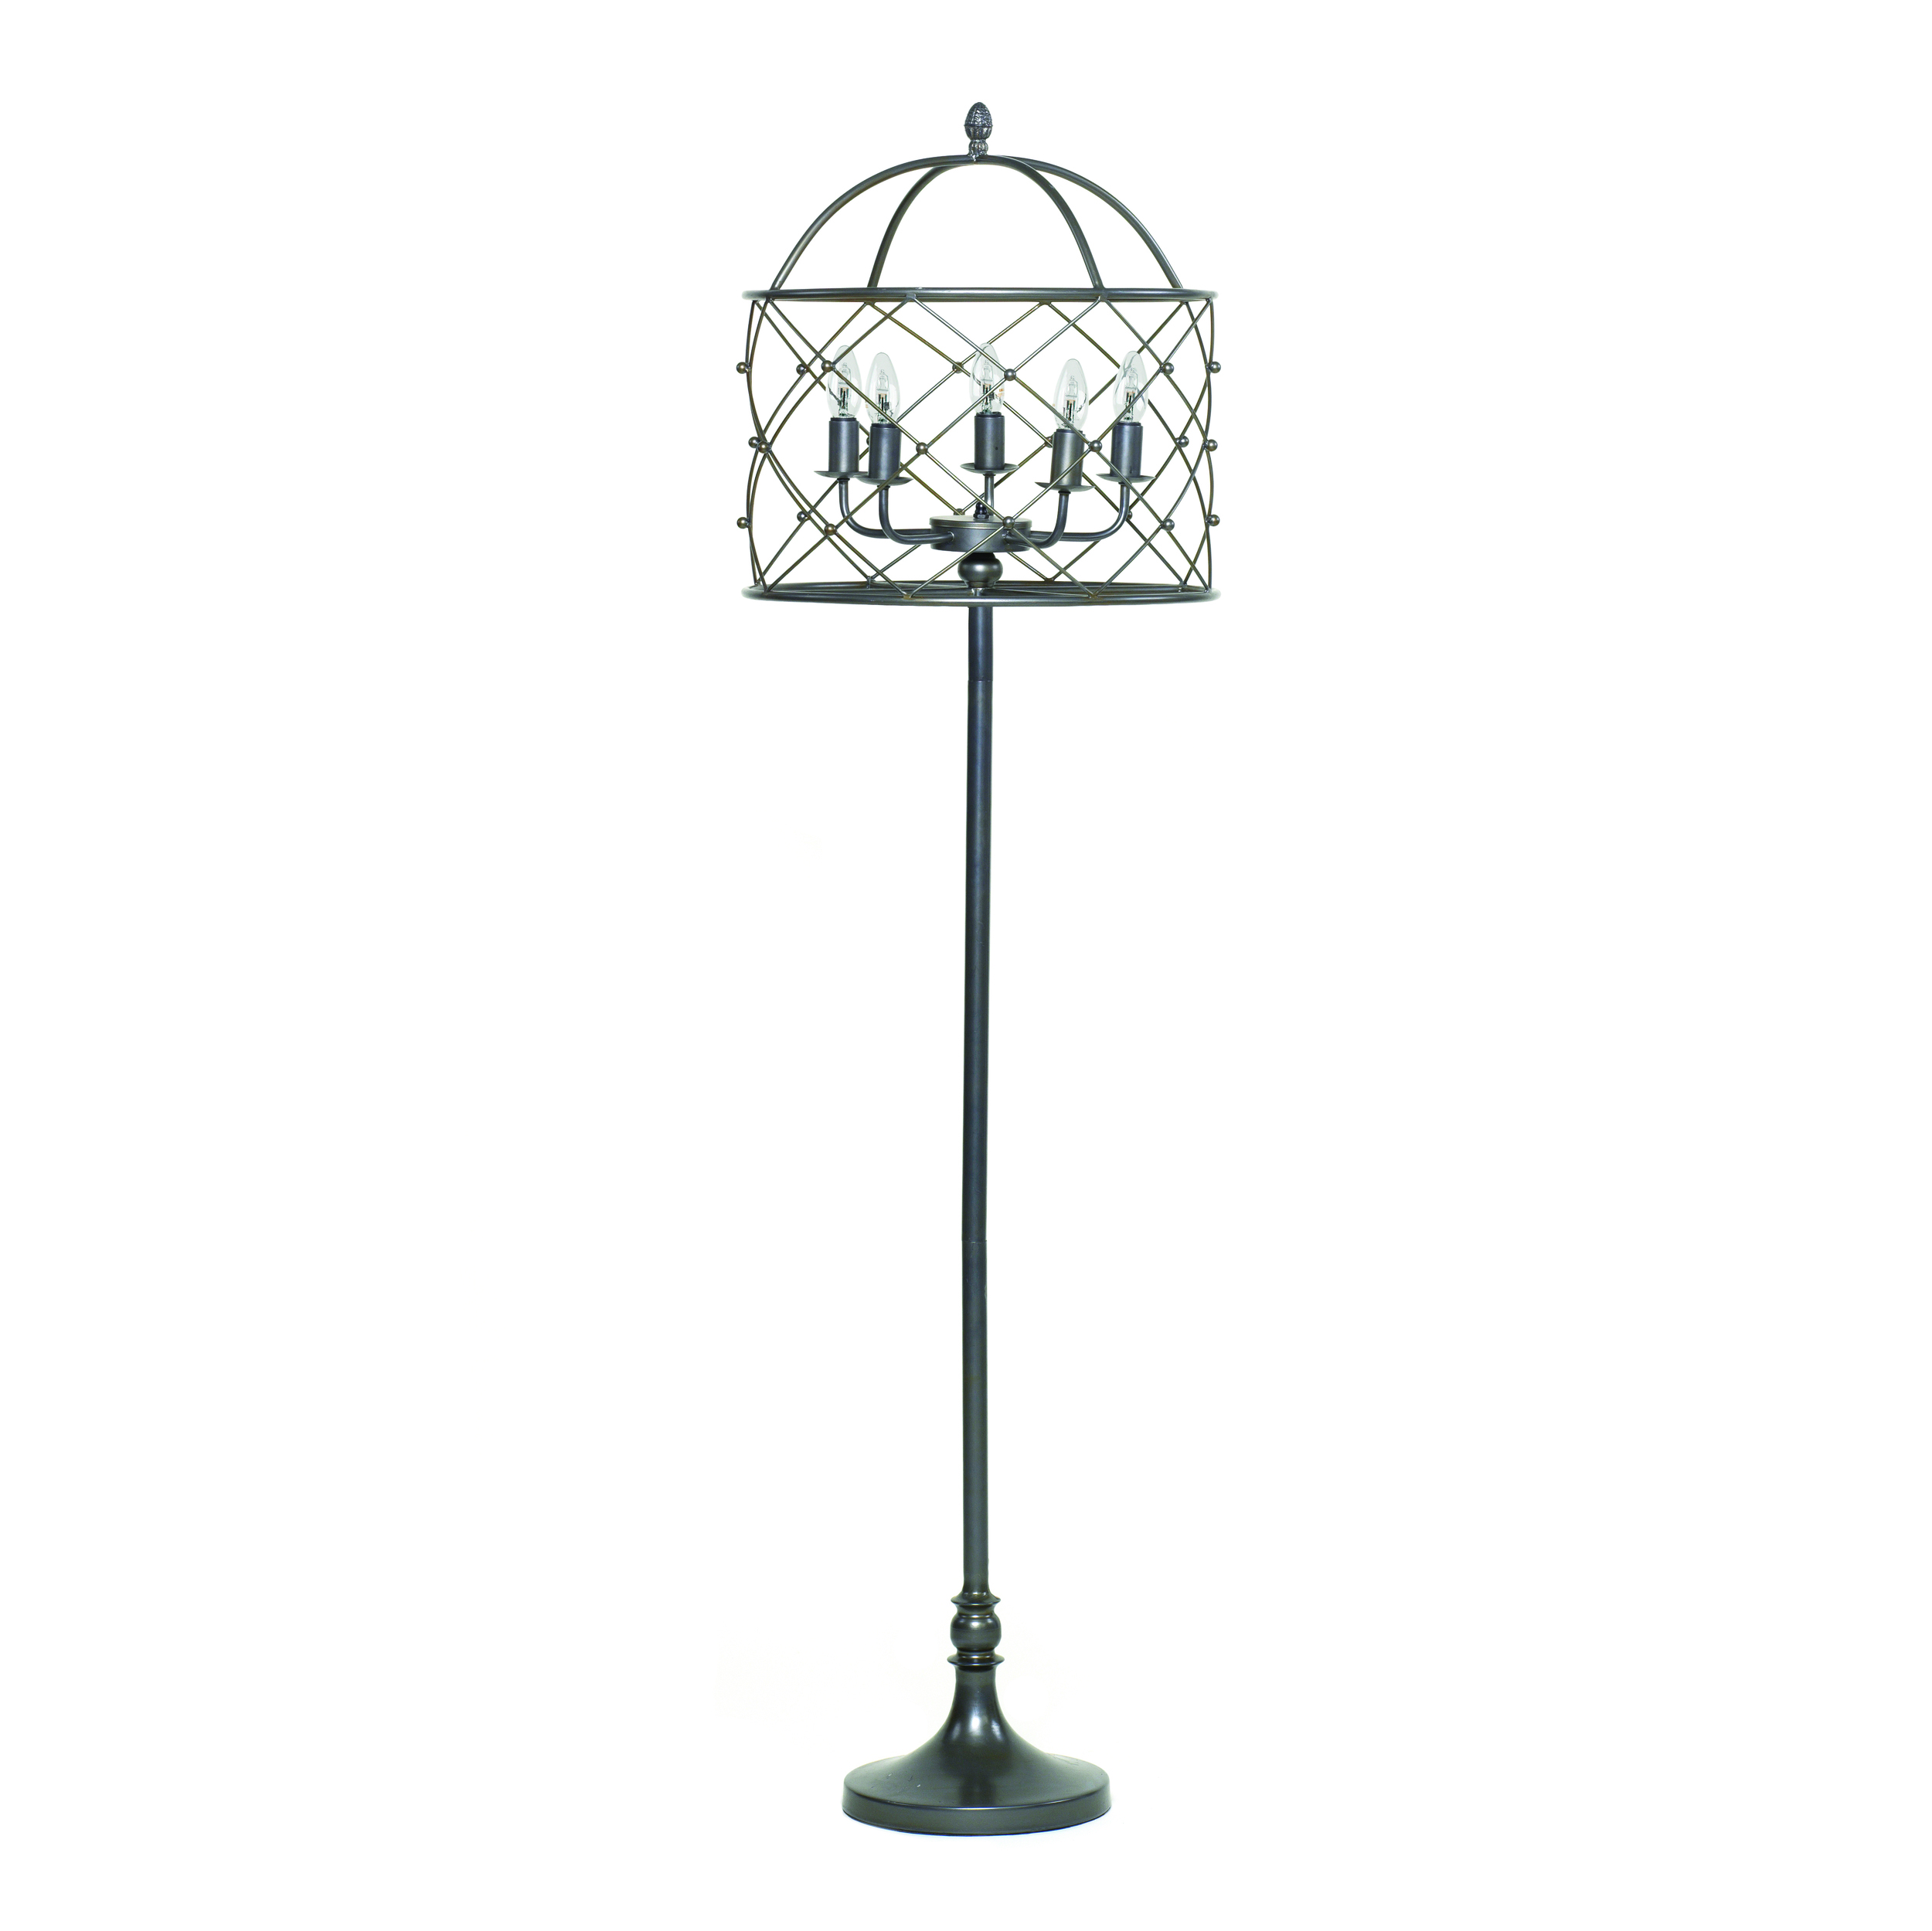 €240 METAL FLOOR LAMP/CAGE W/5 LIGHTS 46X166